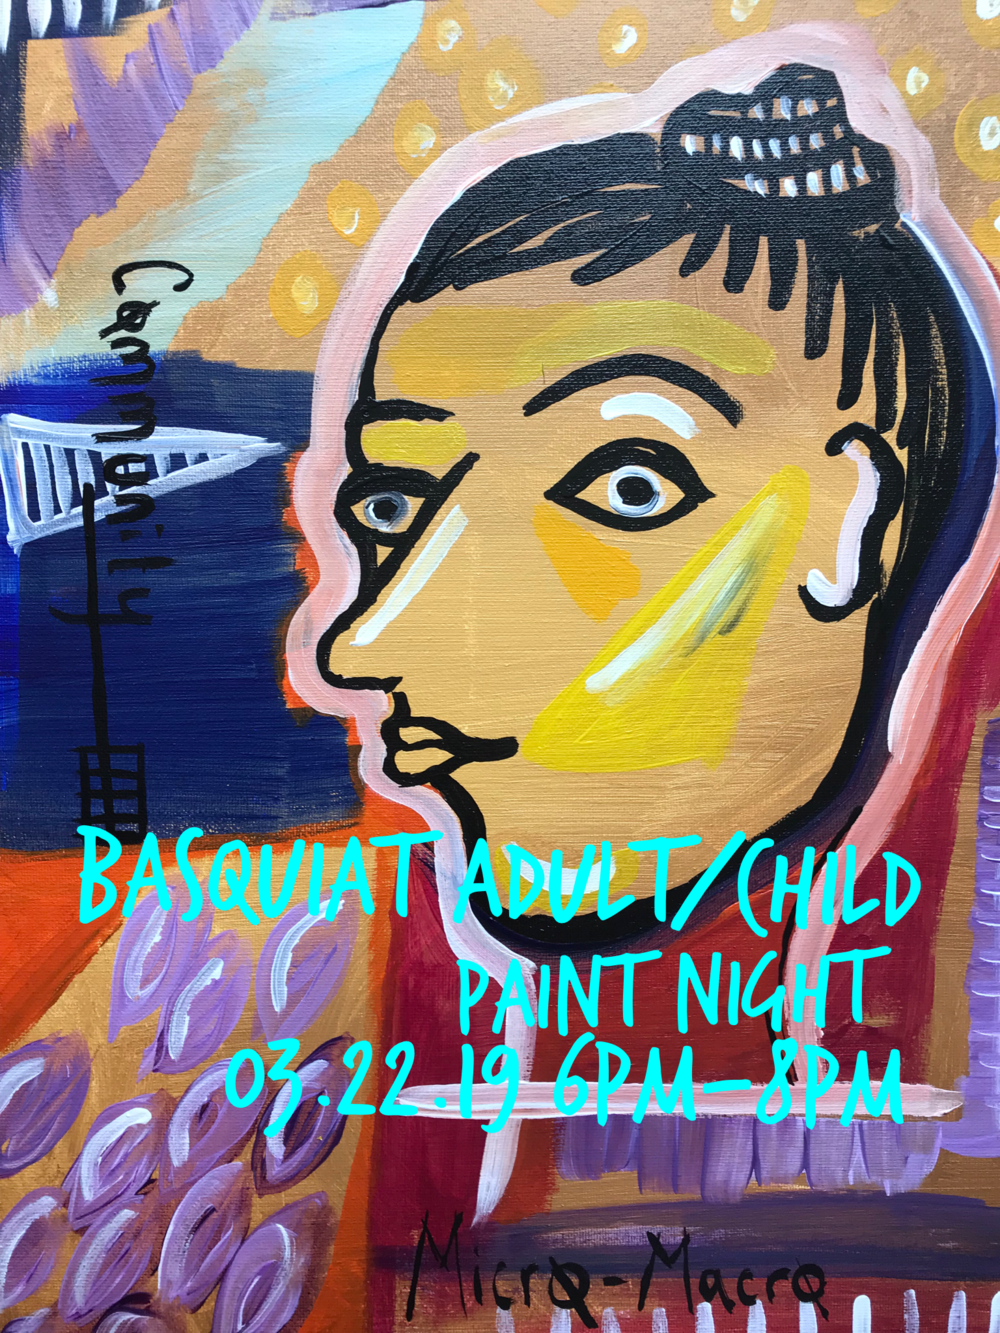 Adult Child Paint Night Basquiat 032219 6pm 8pm Birthday Parties West Seattle Art Nest